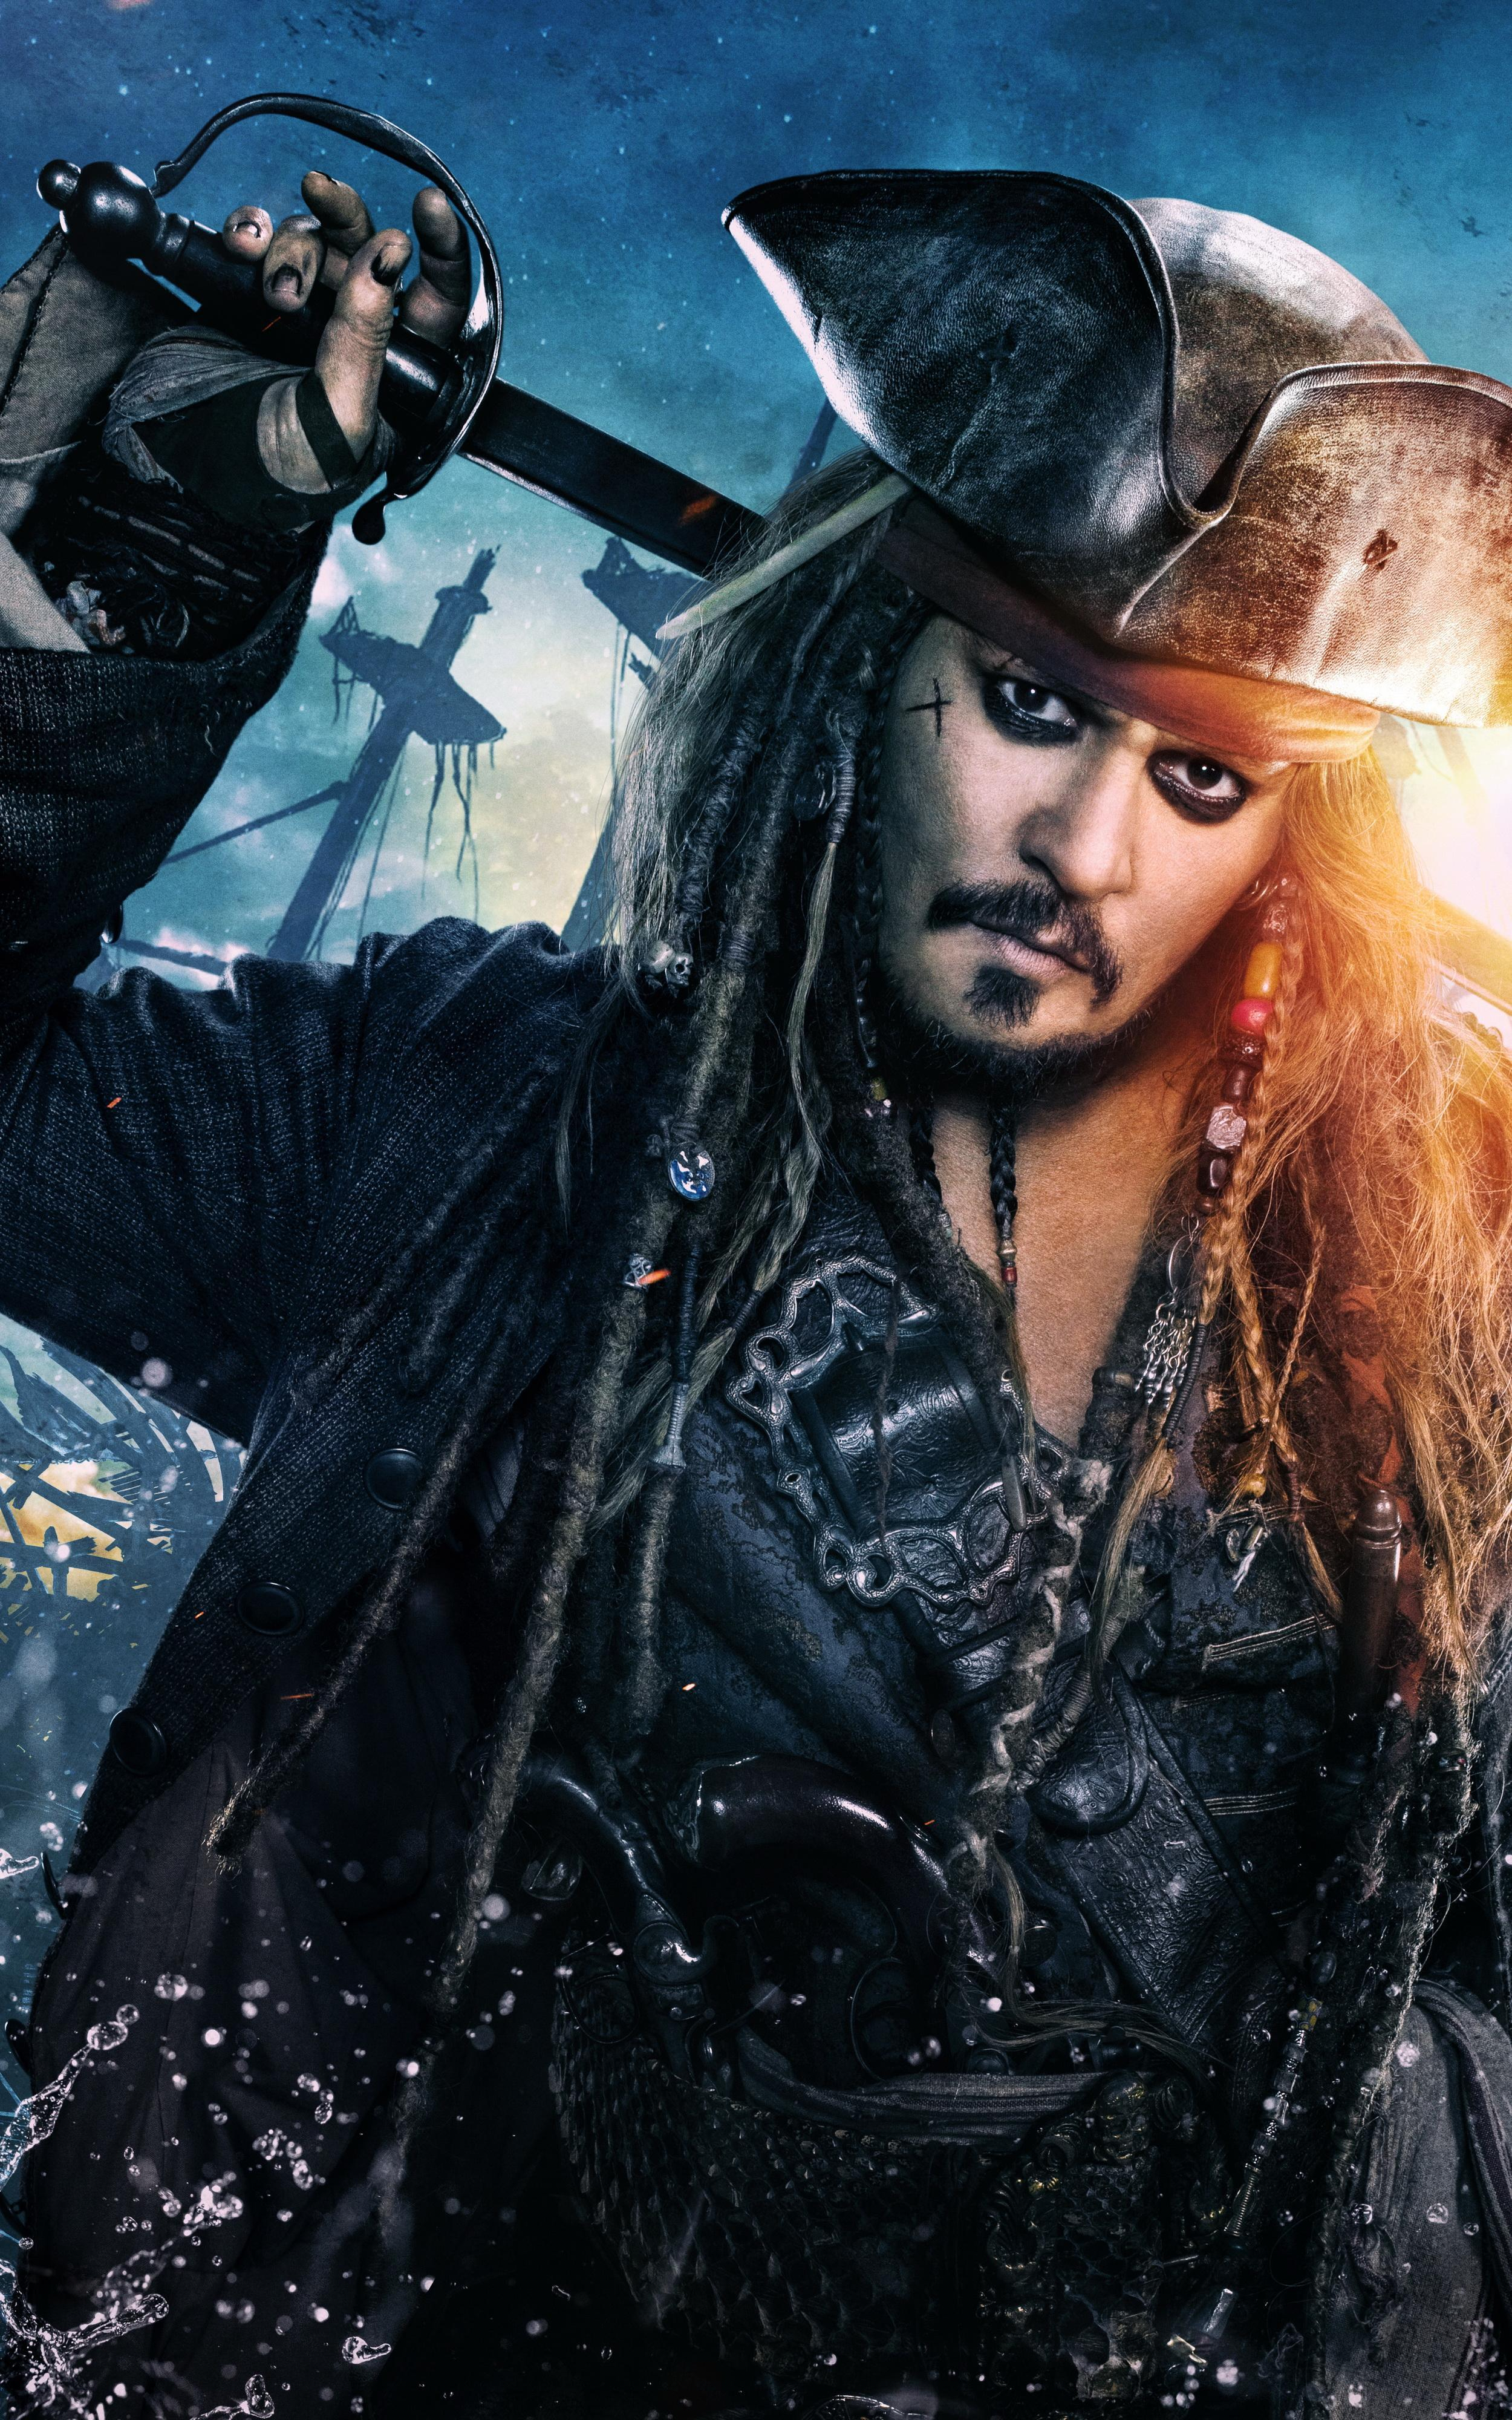 Captain Jack Sparrow Wallpaper Posted By Michelle Tremblay